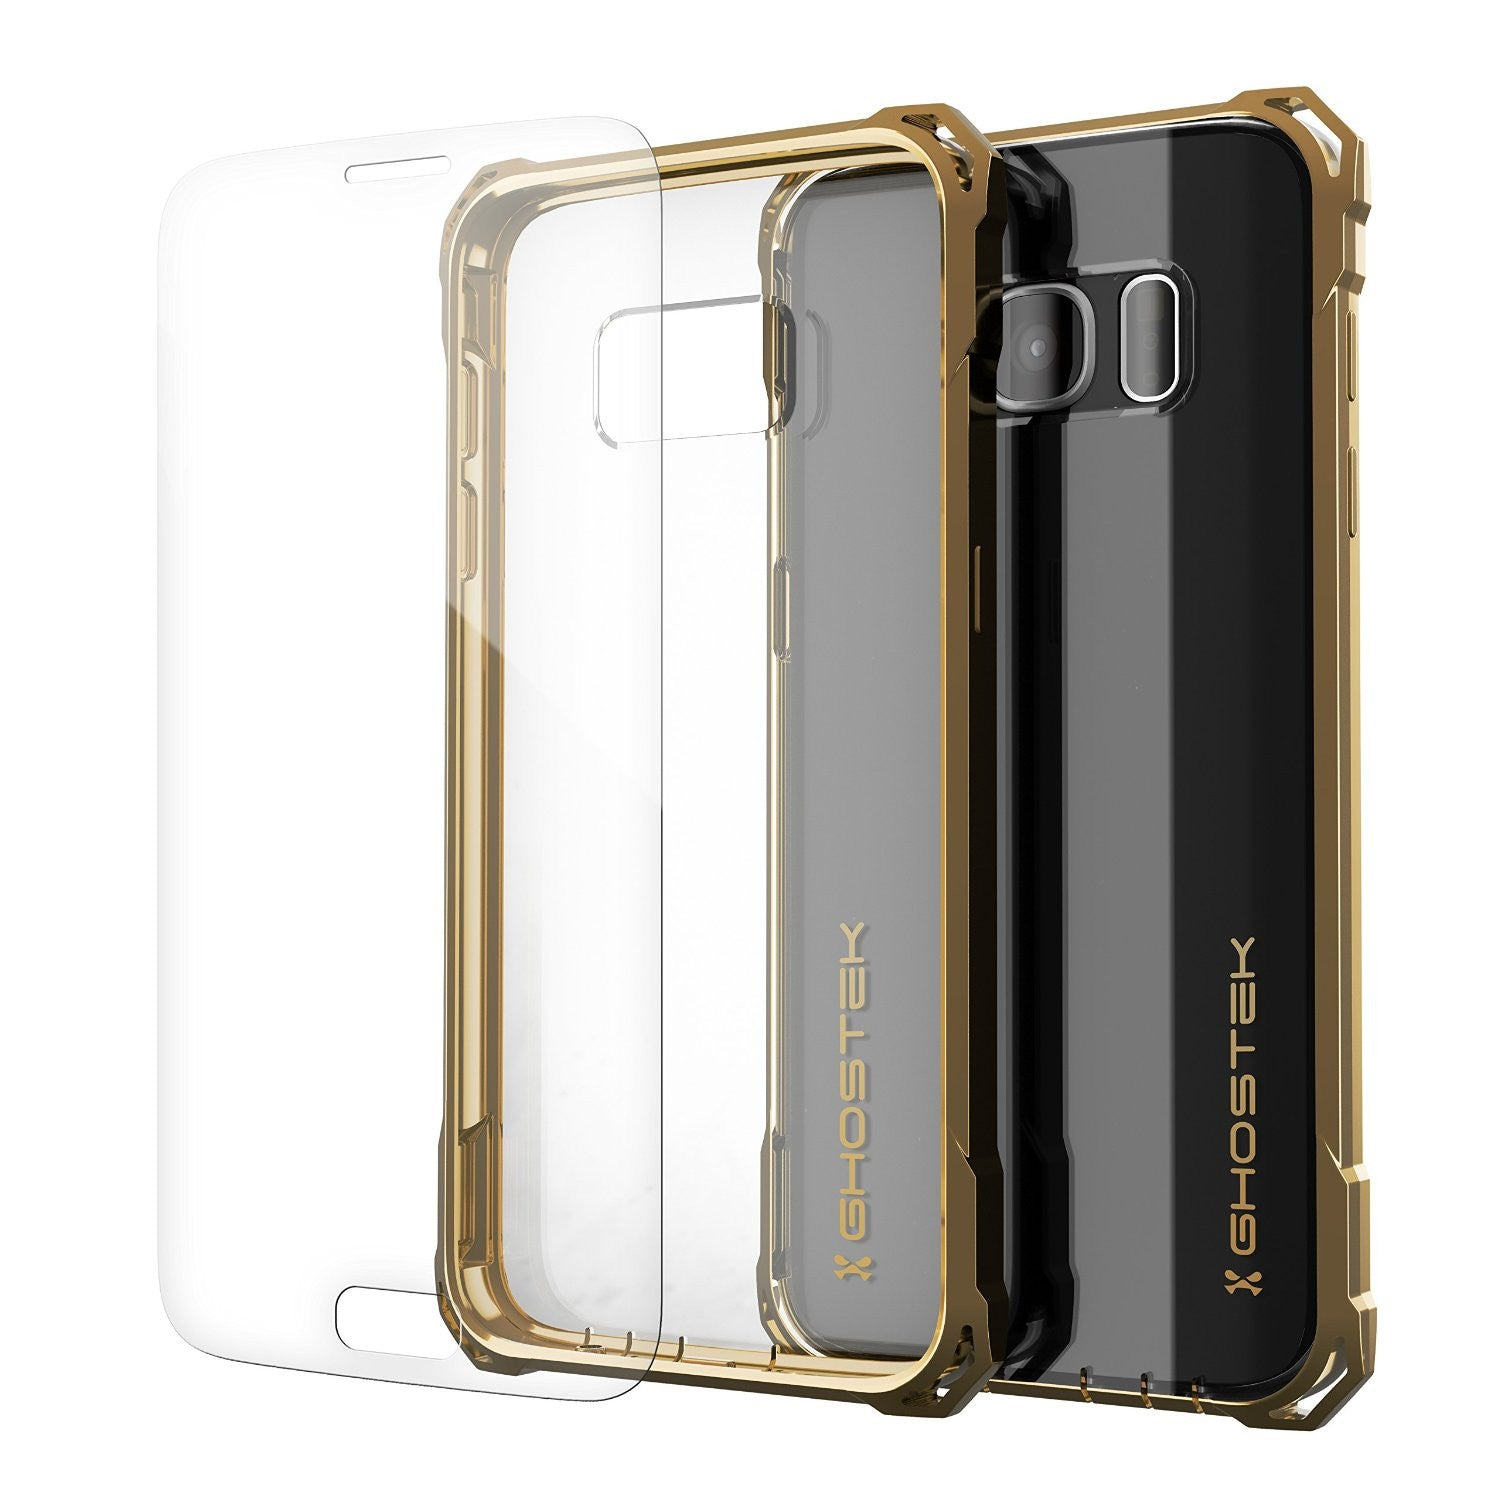 Galaxy S7 Case, Ghostek® Covert Gold Series Premium Impact Cover | Lifetime Warranty Exchange